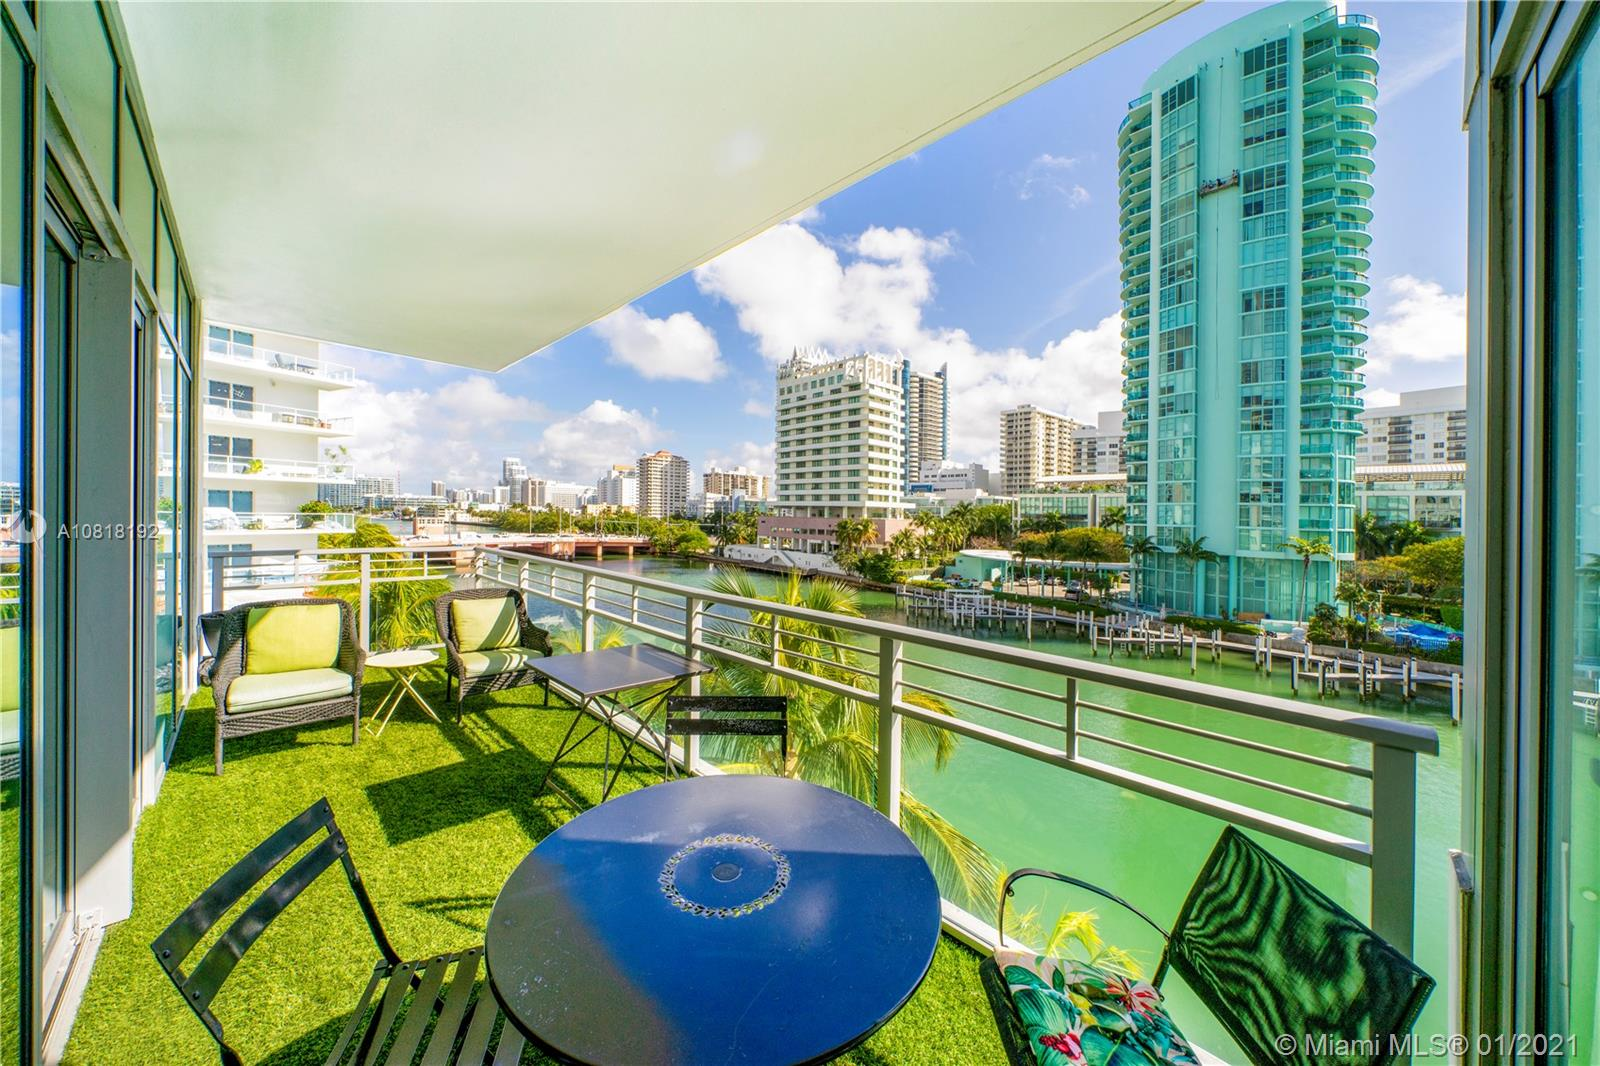 There's Miami Beach living, and then there is Allison Island private living. Chic luxury condo at the prestigious Gorlin Building in guard gated Aqua. The sizable 1,862-square-foot layout offers 3 spacious bedrooms, 3.5 bathrooms. The easterly views over the Intracoastal Waterway provide a relaxing water view & are best enjoyed from the residence's expansive balcony. Some of the benefits of living at Aqua include access to a business center, clubhouse, gym, two pools, and a concierge. The residence comes with 2 parking spaces, and the beach, as well as several area hotspots, are just a couple of blocks away.. Take advantage of private island living at a great price!